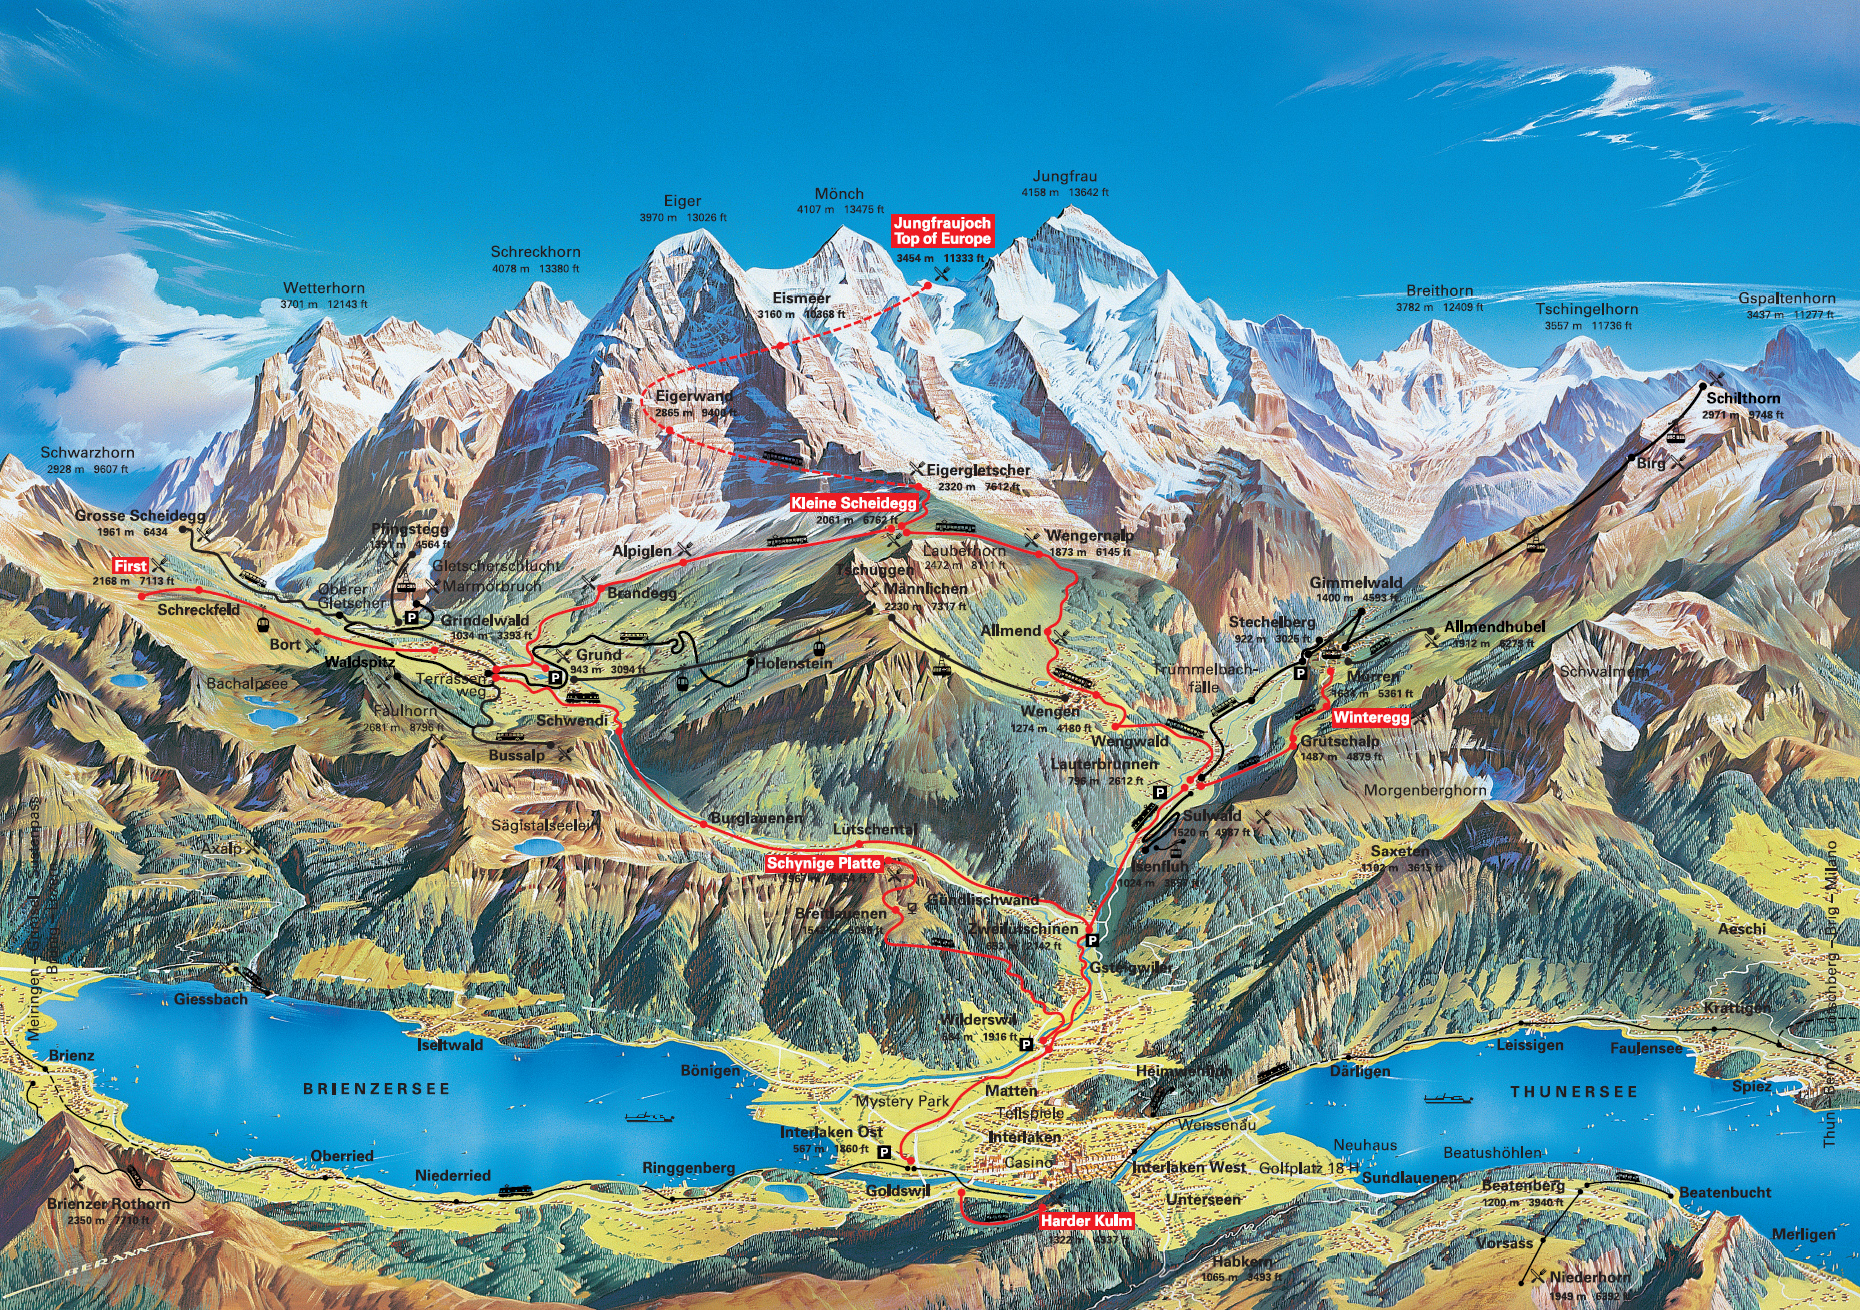 Jungfrau Grindelwald region summer map Grindelwald Switzerland